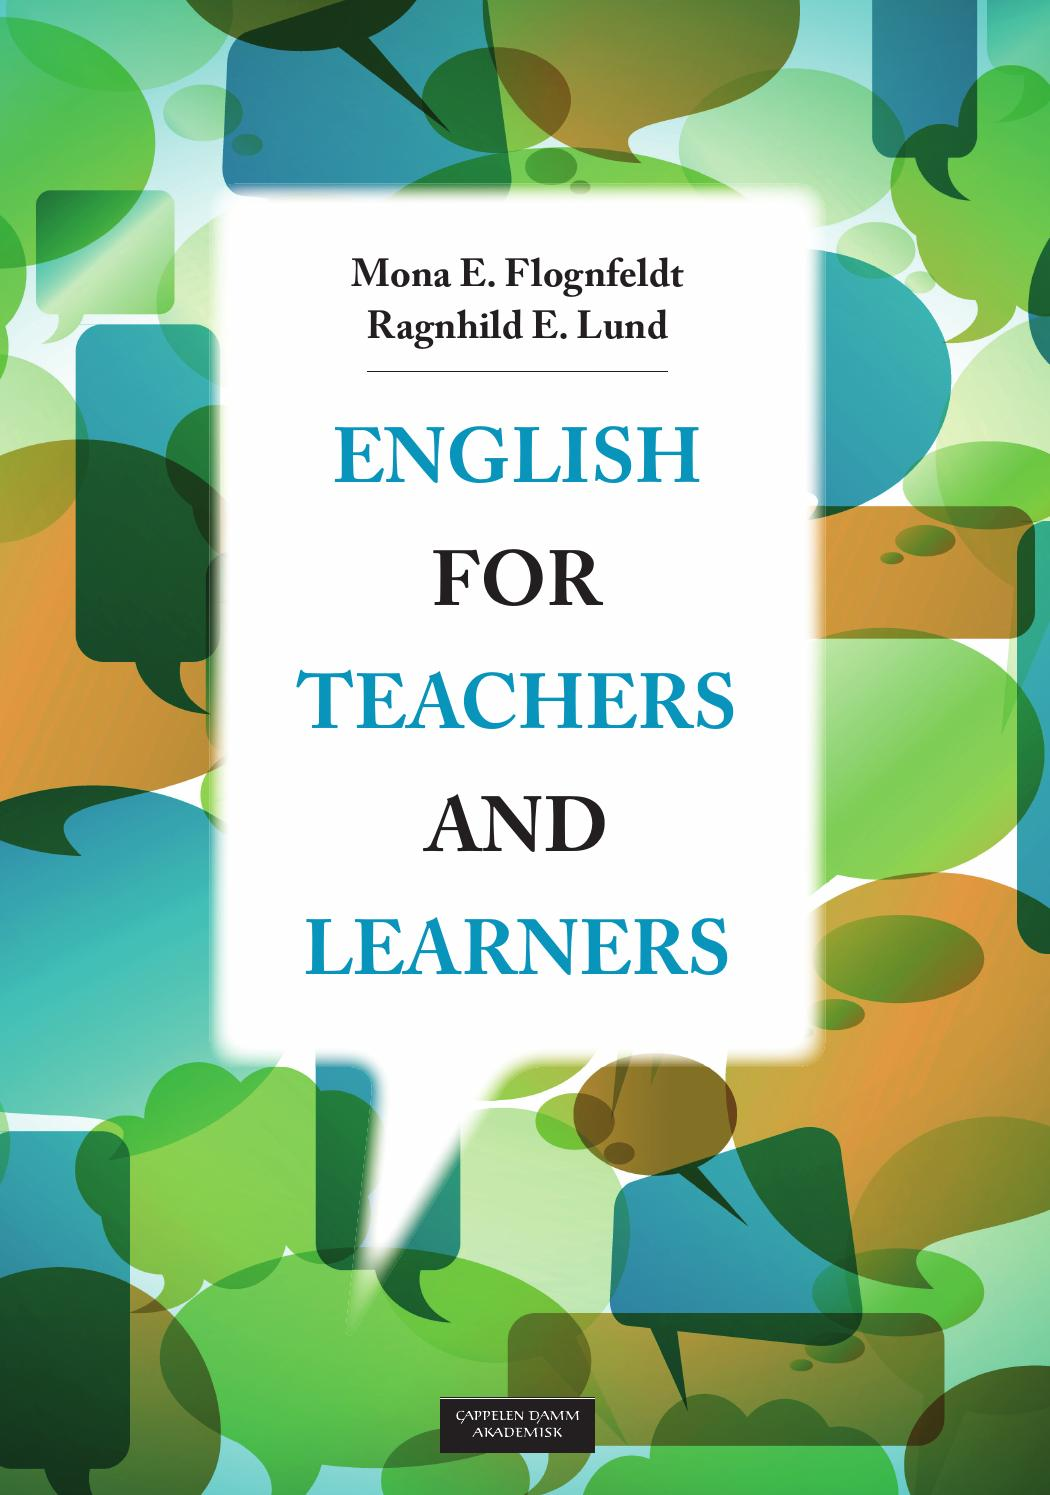 English for teachers and learners by Cappelen Damm - issuu